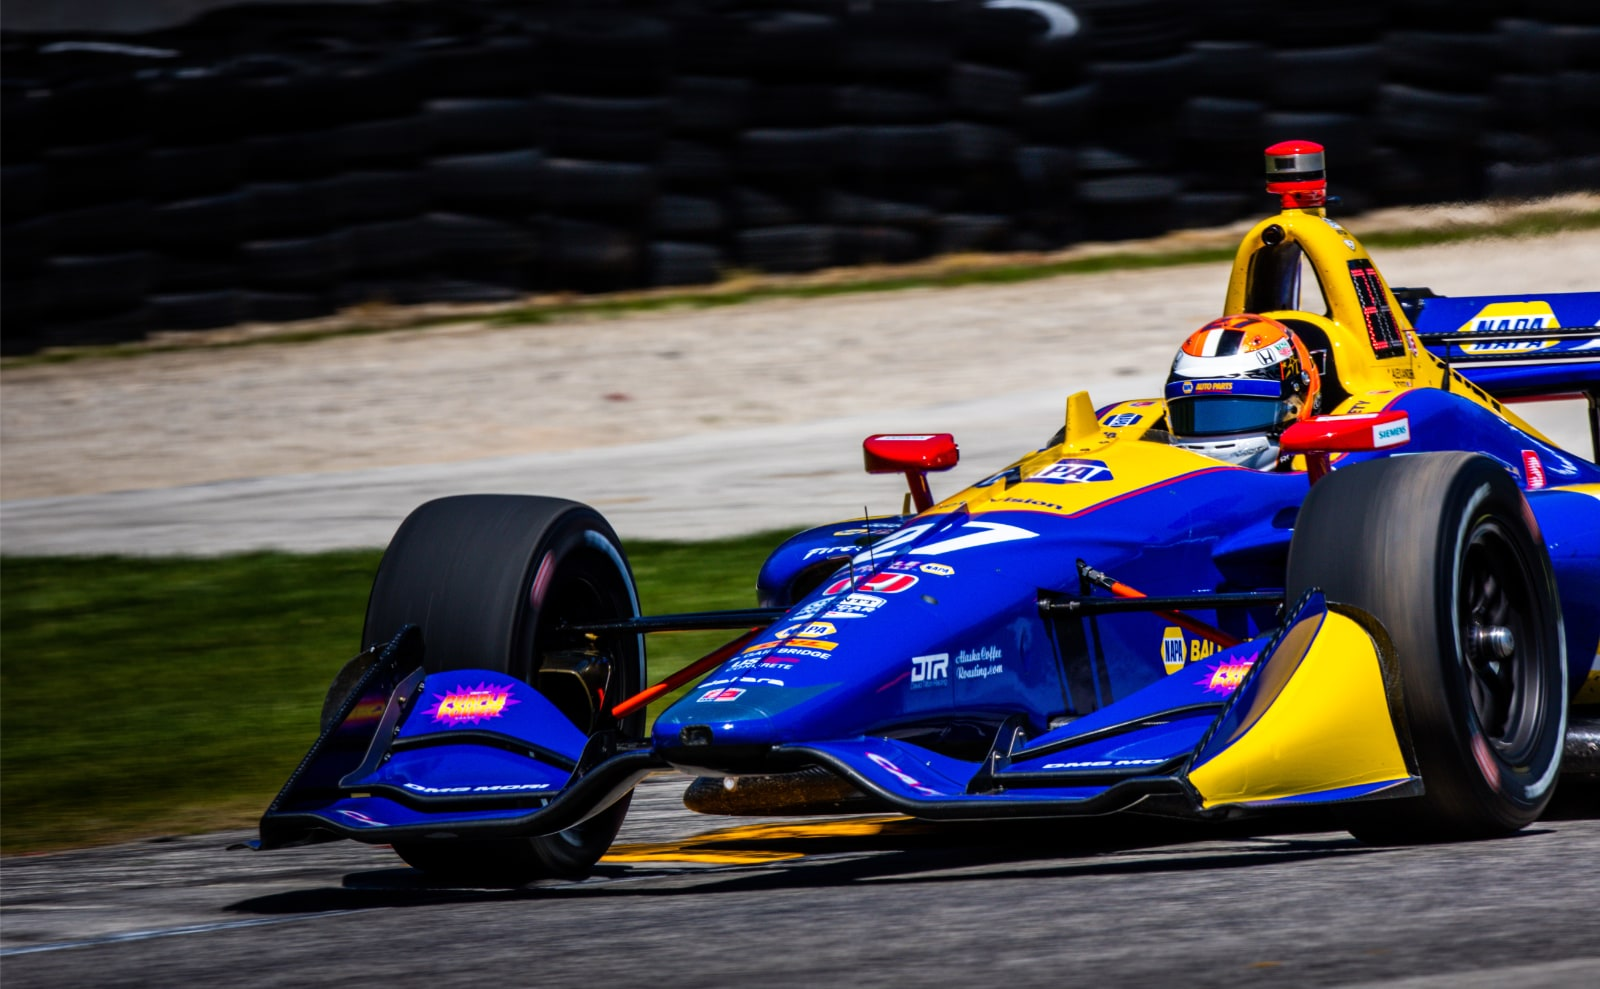 Alexander Rossi pounds around Road America in 2019 IndyCar practice times